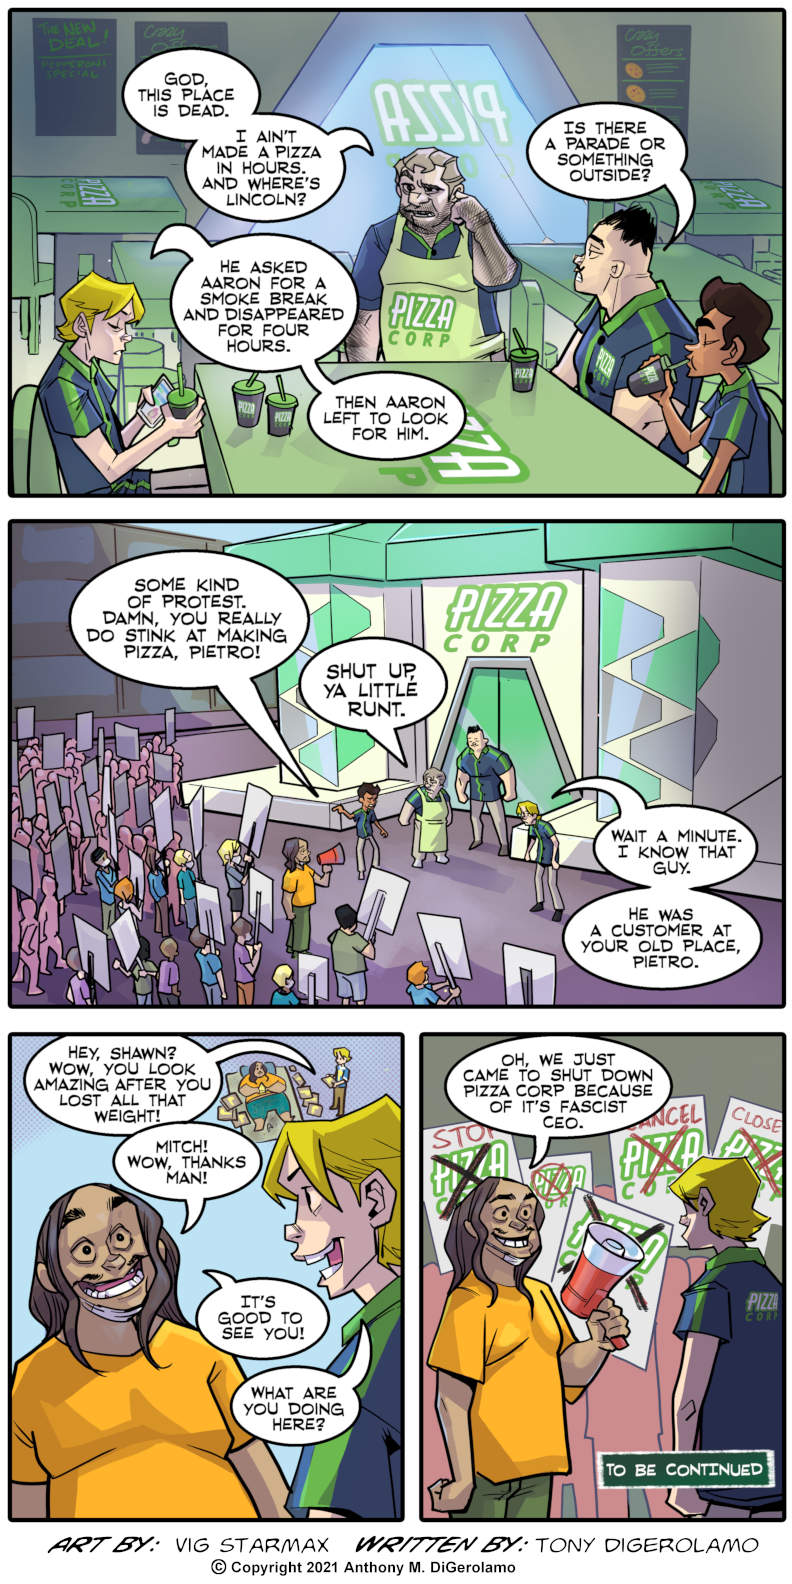 Tales of Pizza:  Protesting Pizza